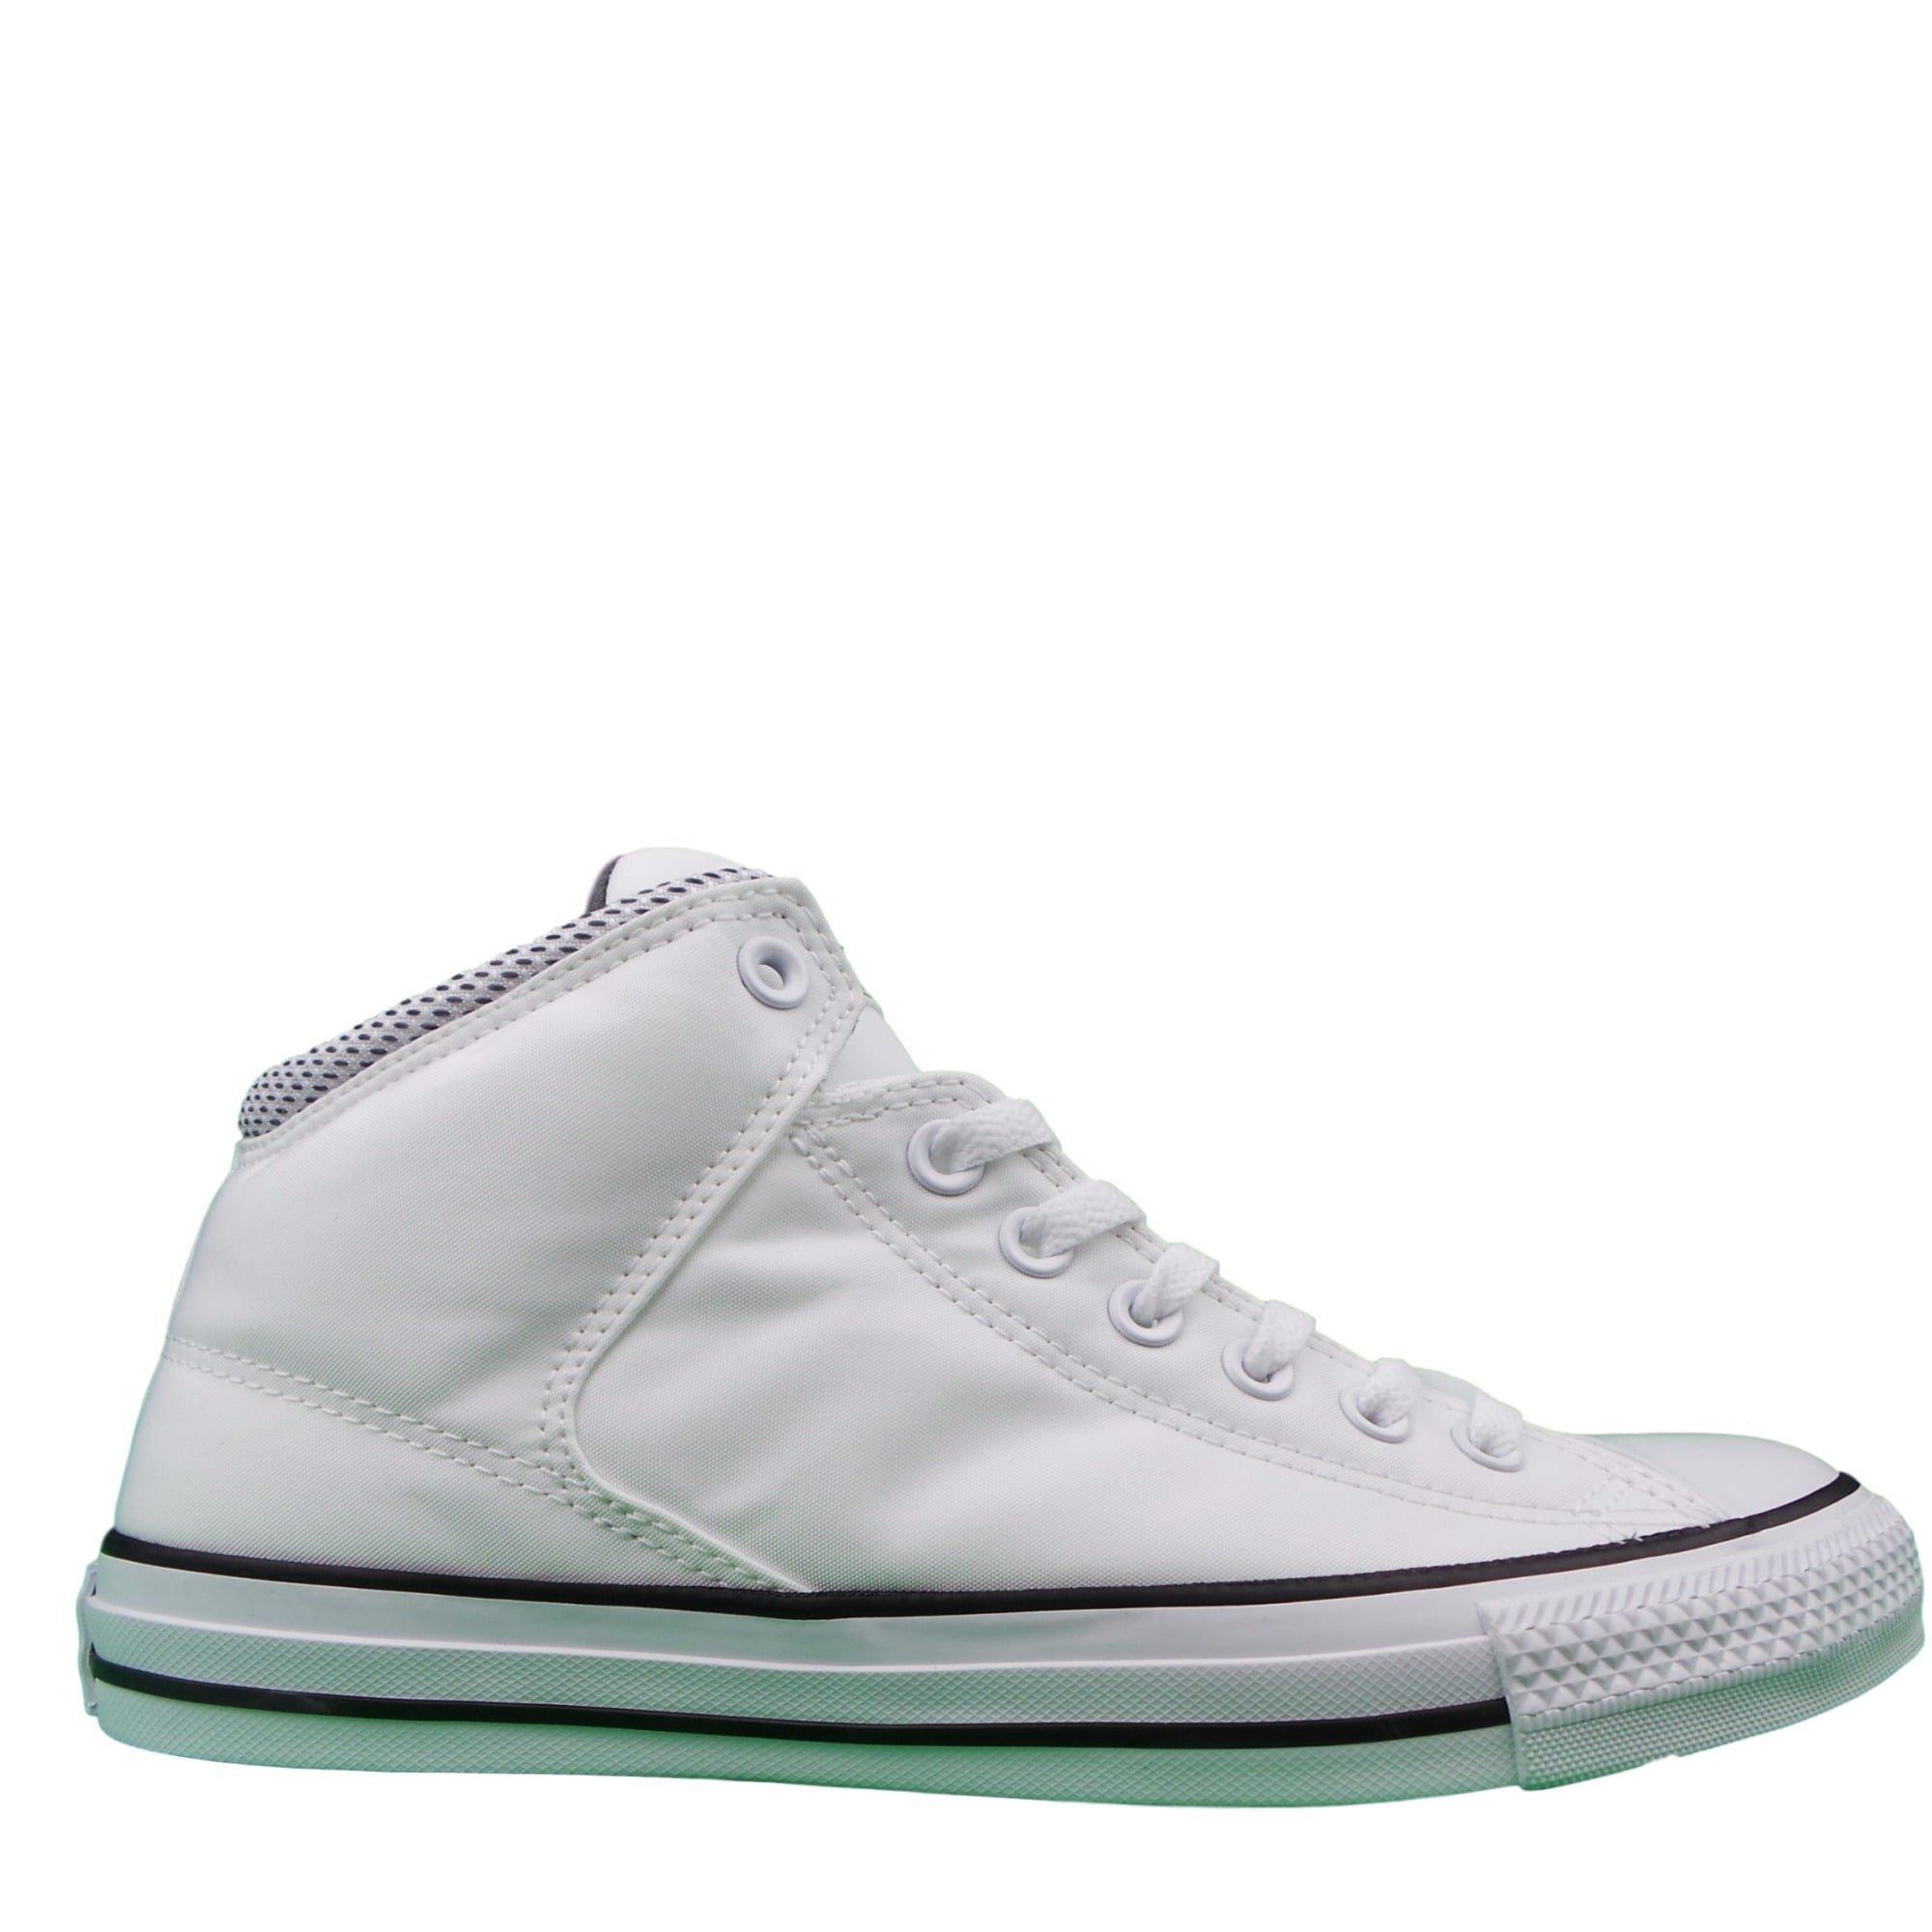 38ee3a17fd76 Galleon - Converse Mens Chuck Taylor High Street Hi White Black Thunder  Sneaker - 11 Men - 13 Women